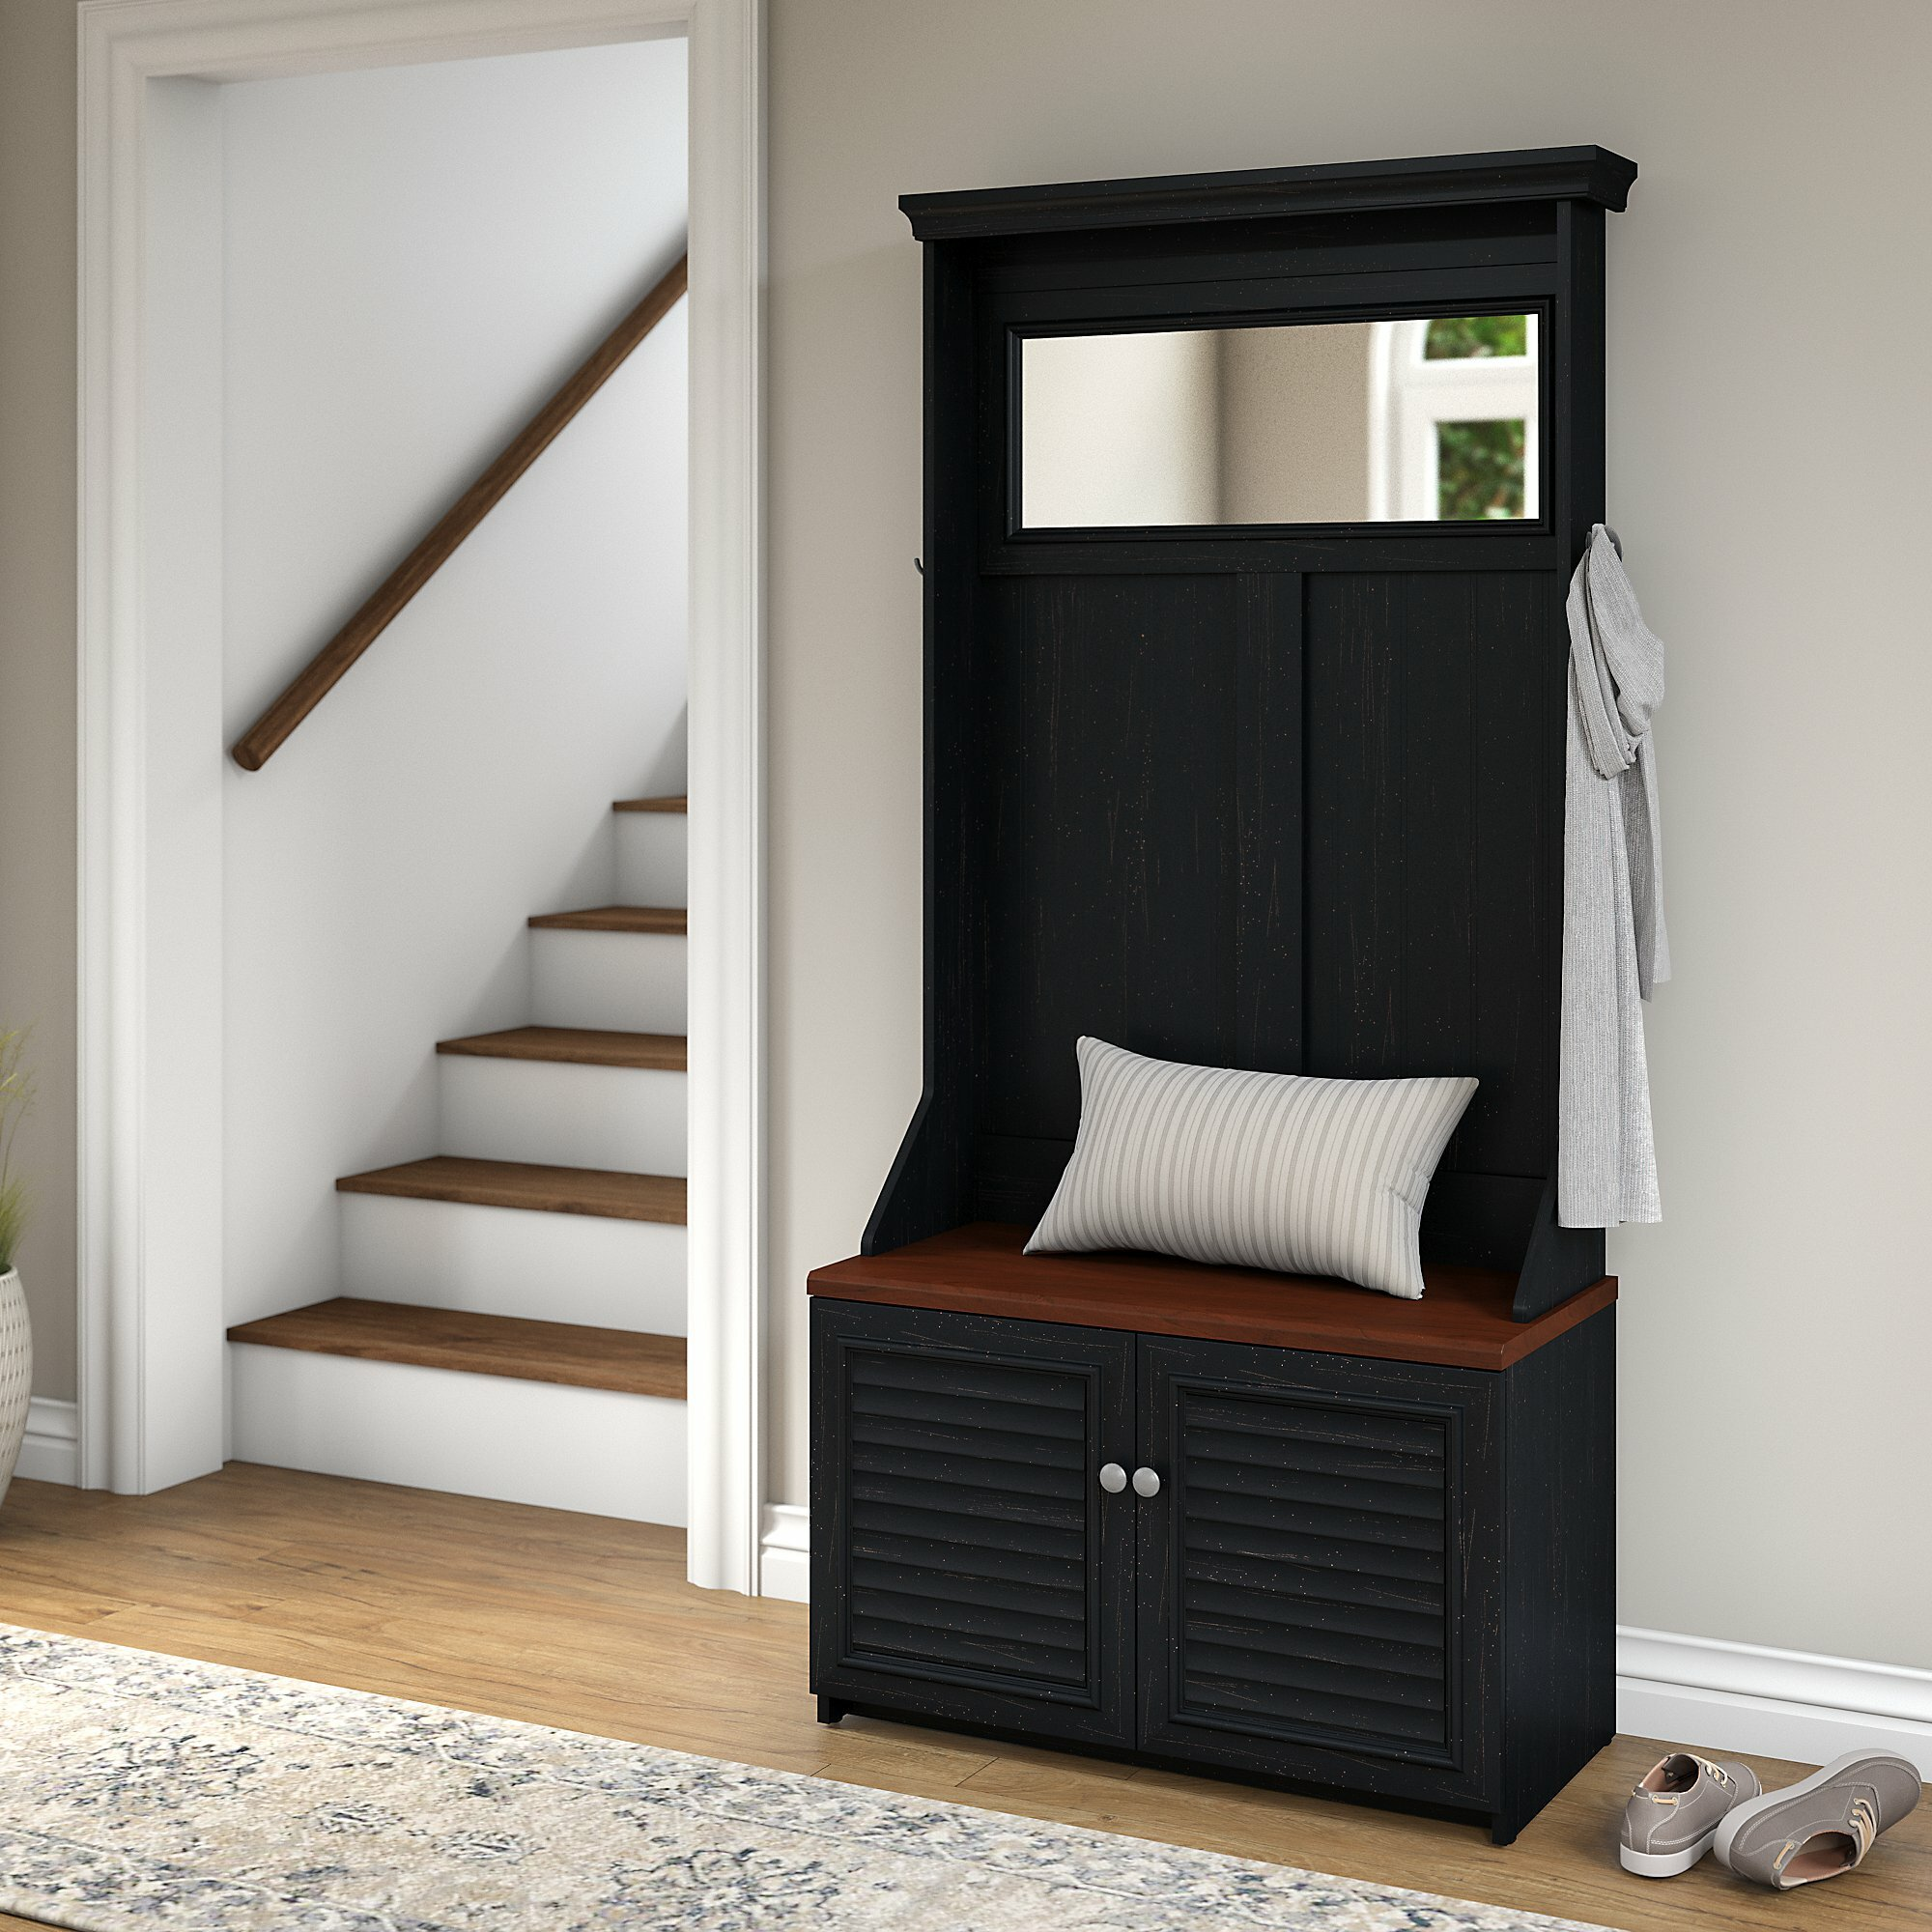 Beachcrest Home Oakridge Hall Tree With Shoe Storage Bench Wayfair - Oakridge bedroom furniture